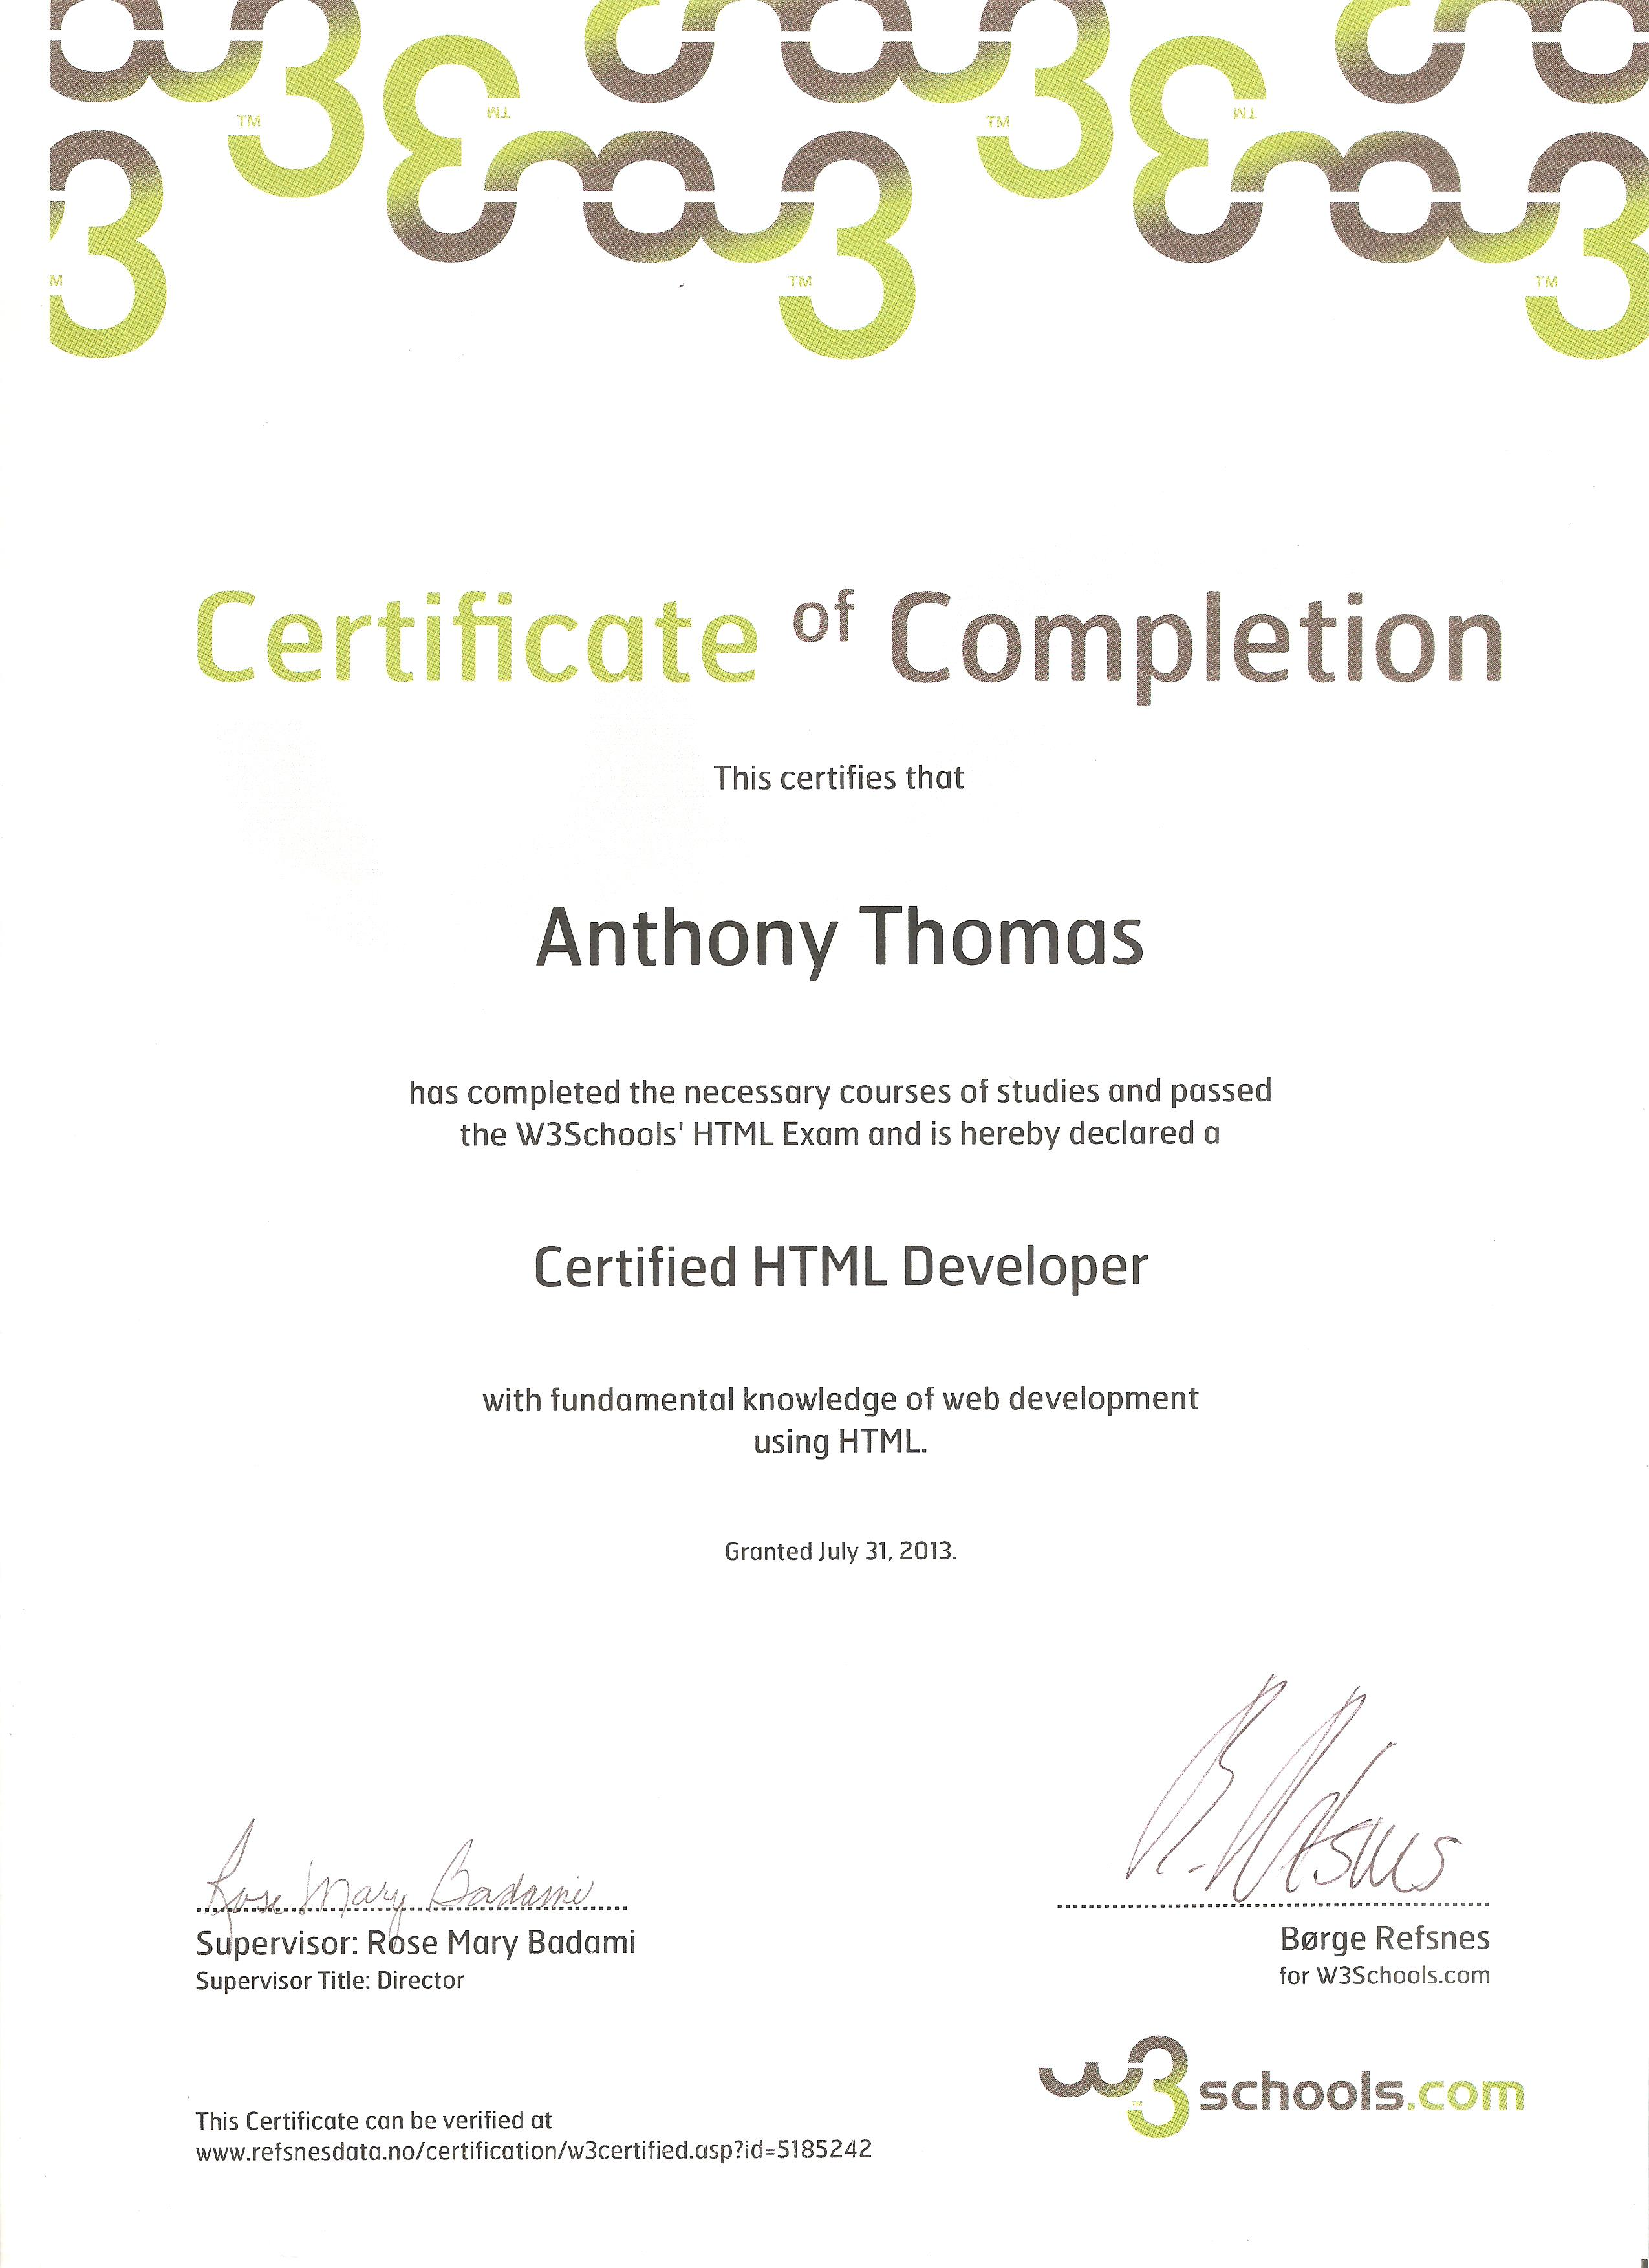 Anthony thomas resume july 2013 html developers certificate w3schools fall 2003 introduction to computers houston community college 1989 ged from the state of california xflitez Images